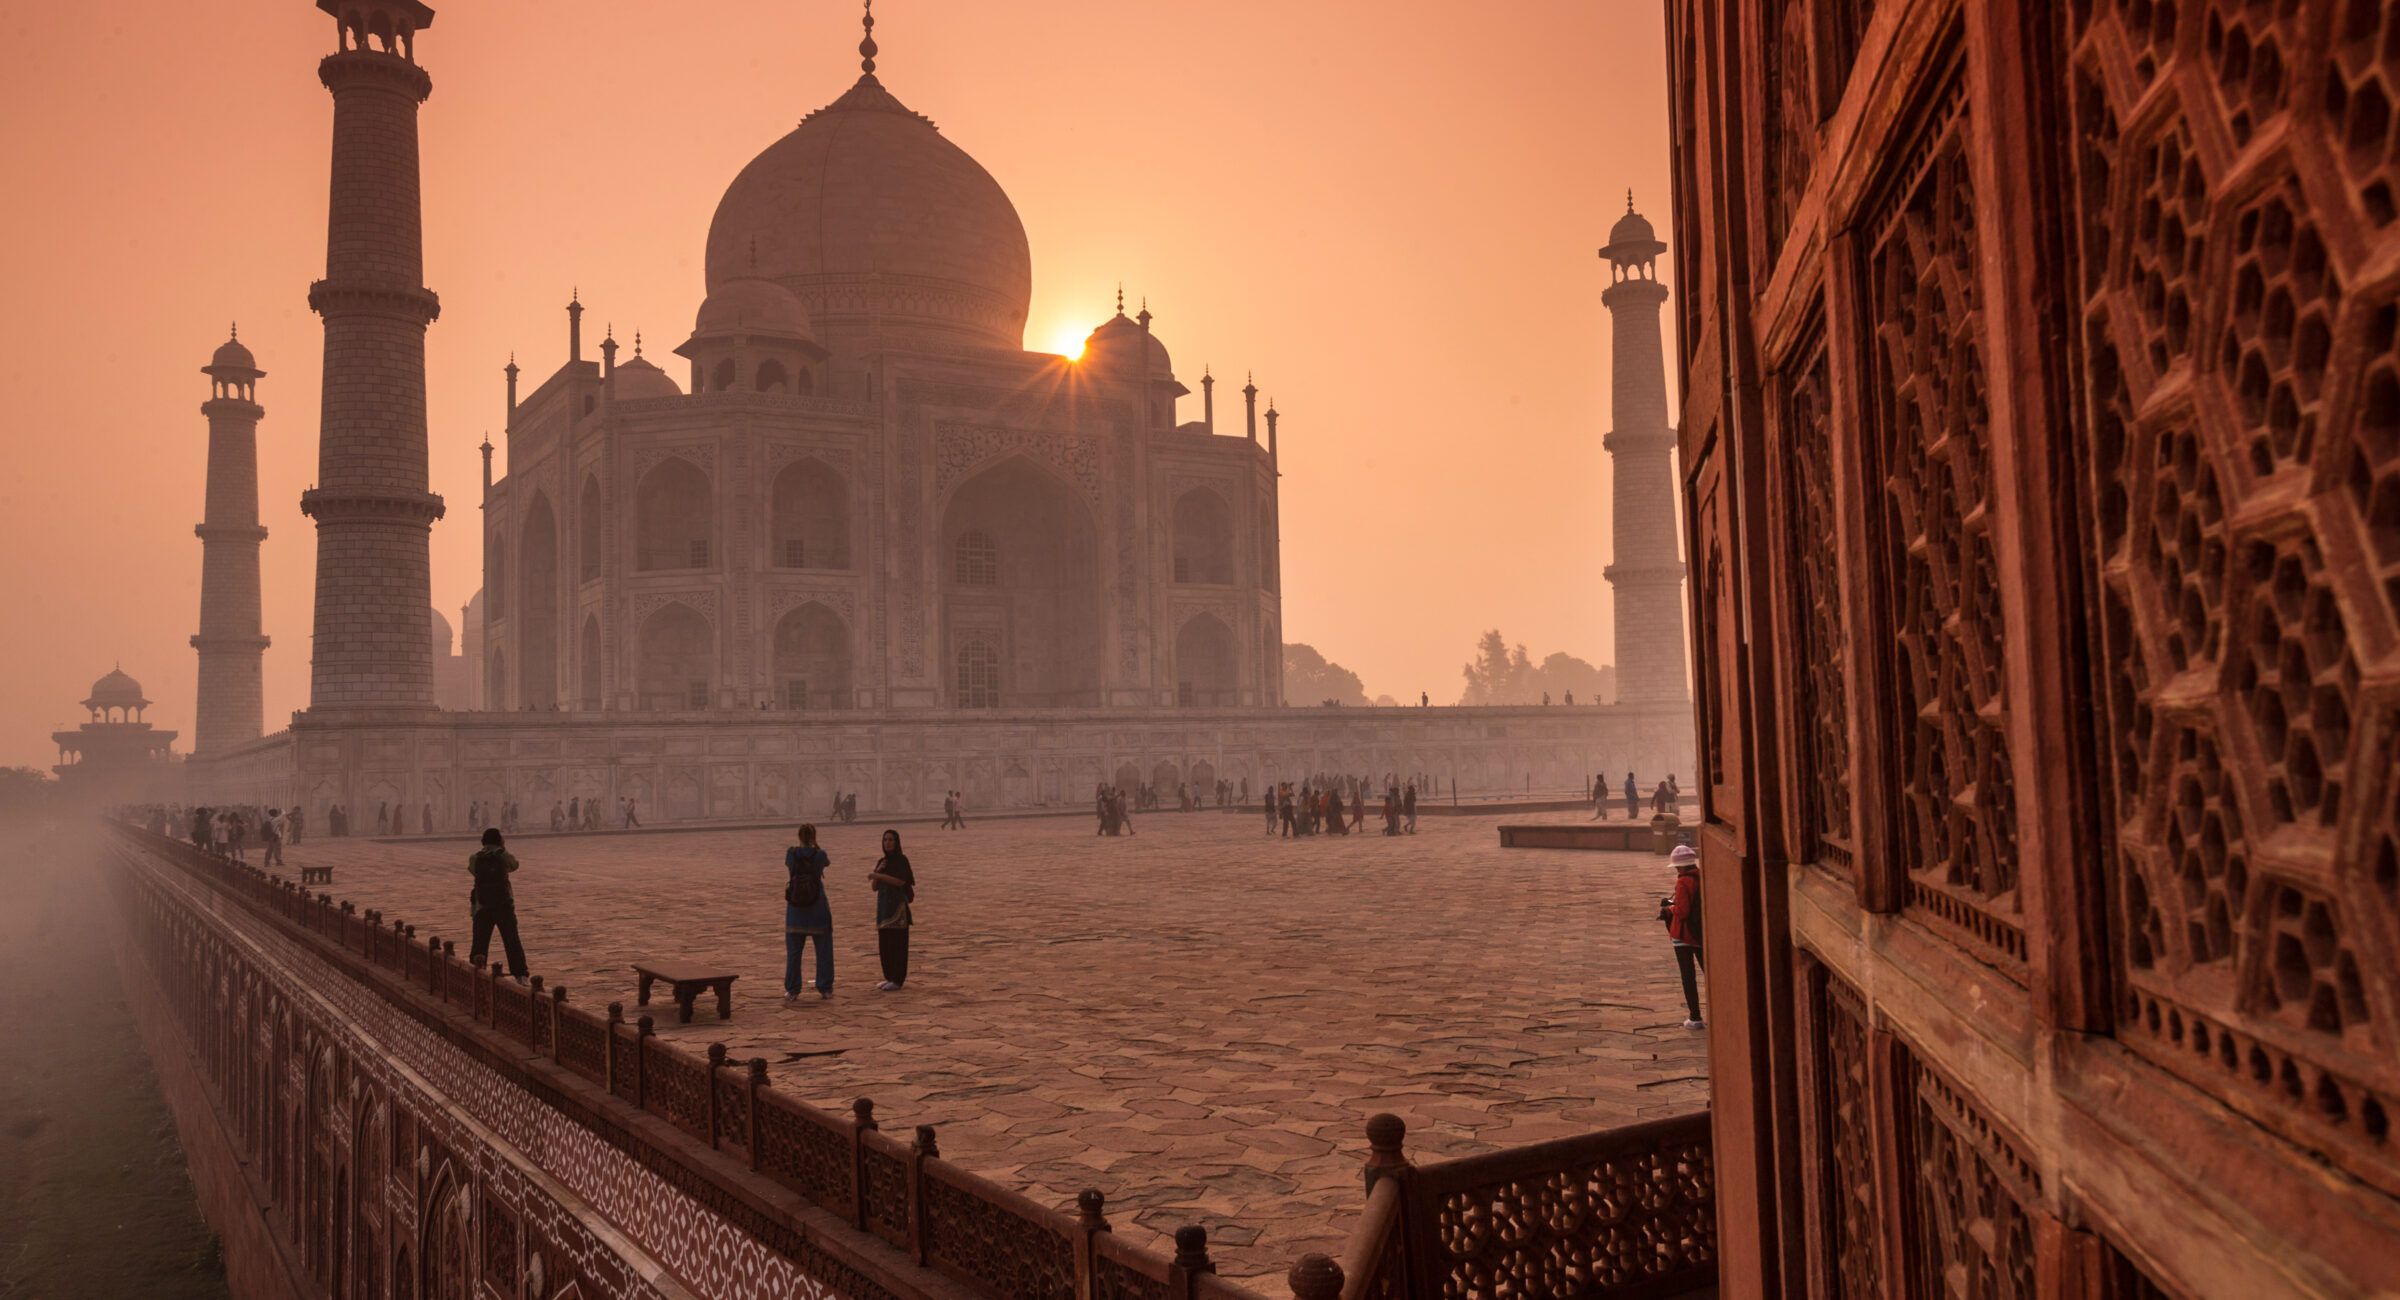 People visiting the magnificent Taj Mahal in Agra, India